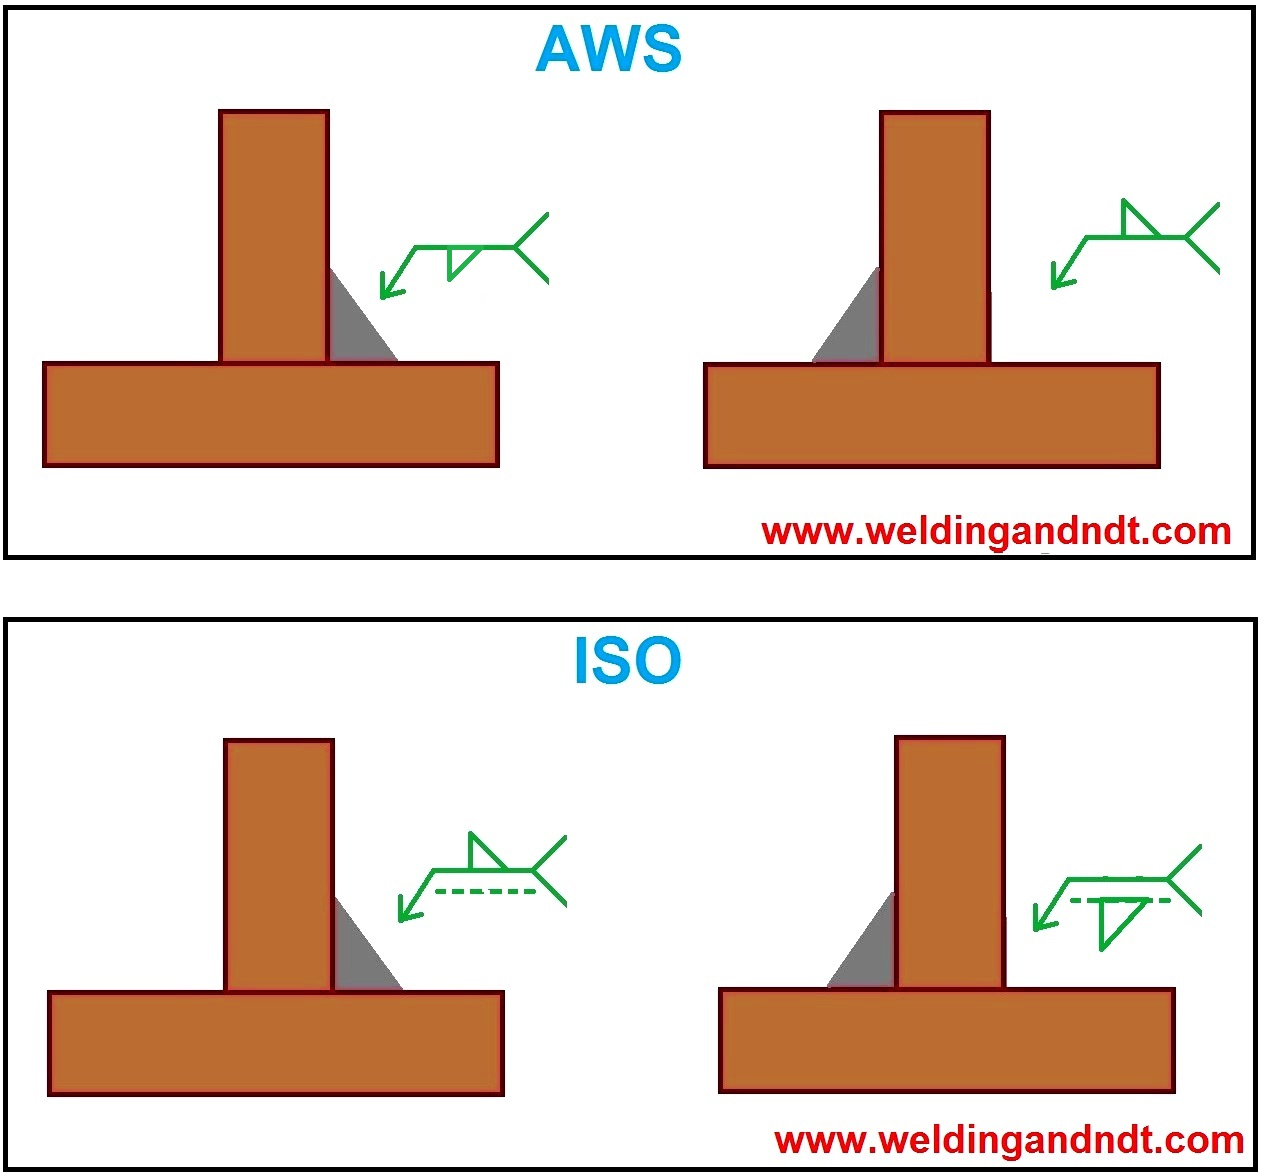 welding symbol for fillet joints - AWS and ISO